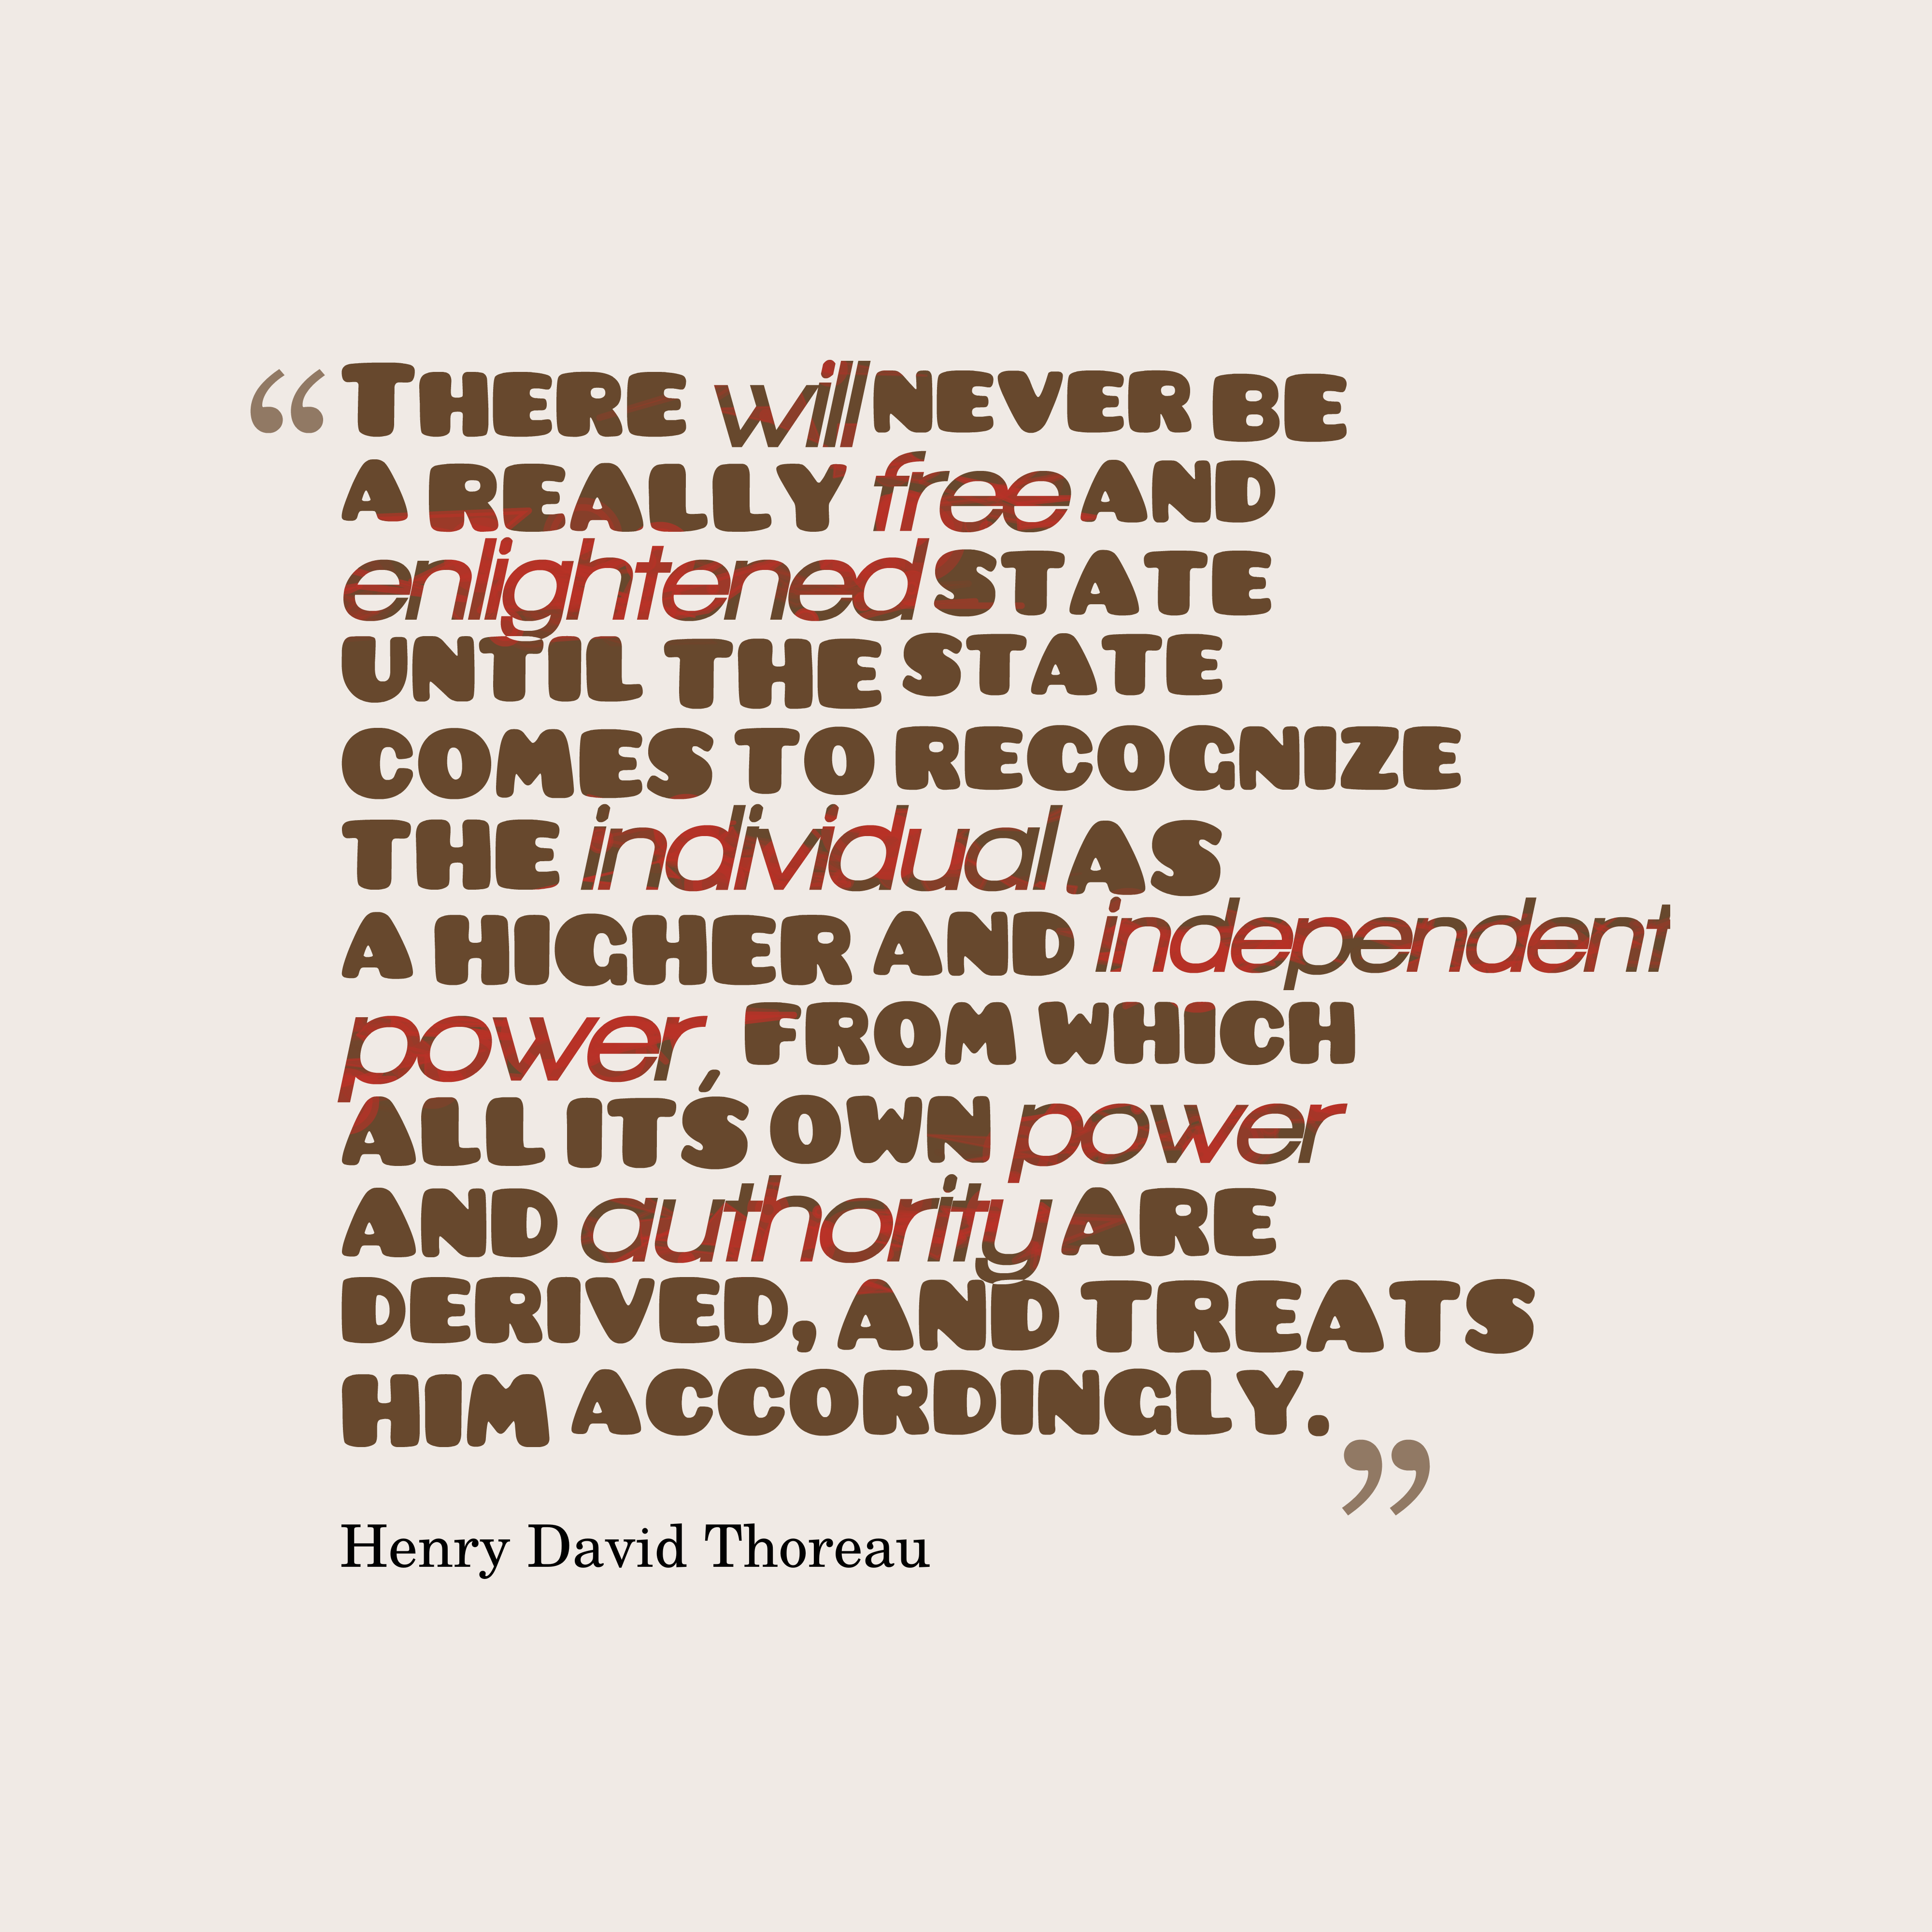 Quotes image of There will never be a really free and enlightened state until the state comes to recognize the individual as a higher and independent power, from which all its own power and authority are derived, and treats him accordingly.